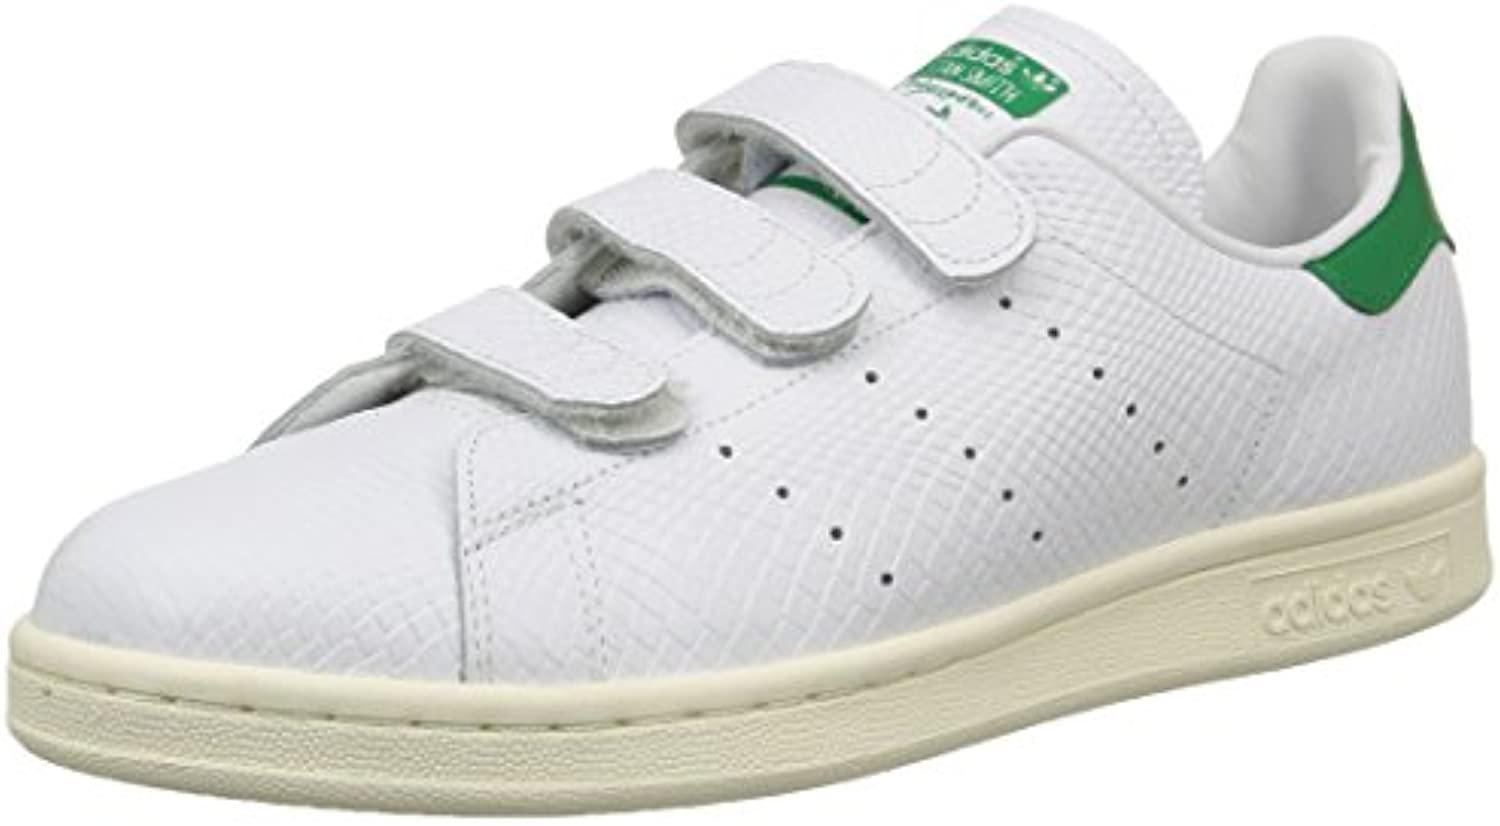 adidas originals unisexe adultes & eacute; stan stan stan smith fc à chaussures, bianco, 13 royaume - uni 8d6e2c